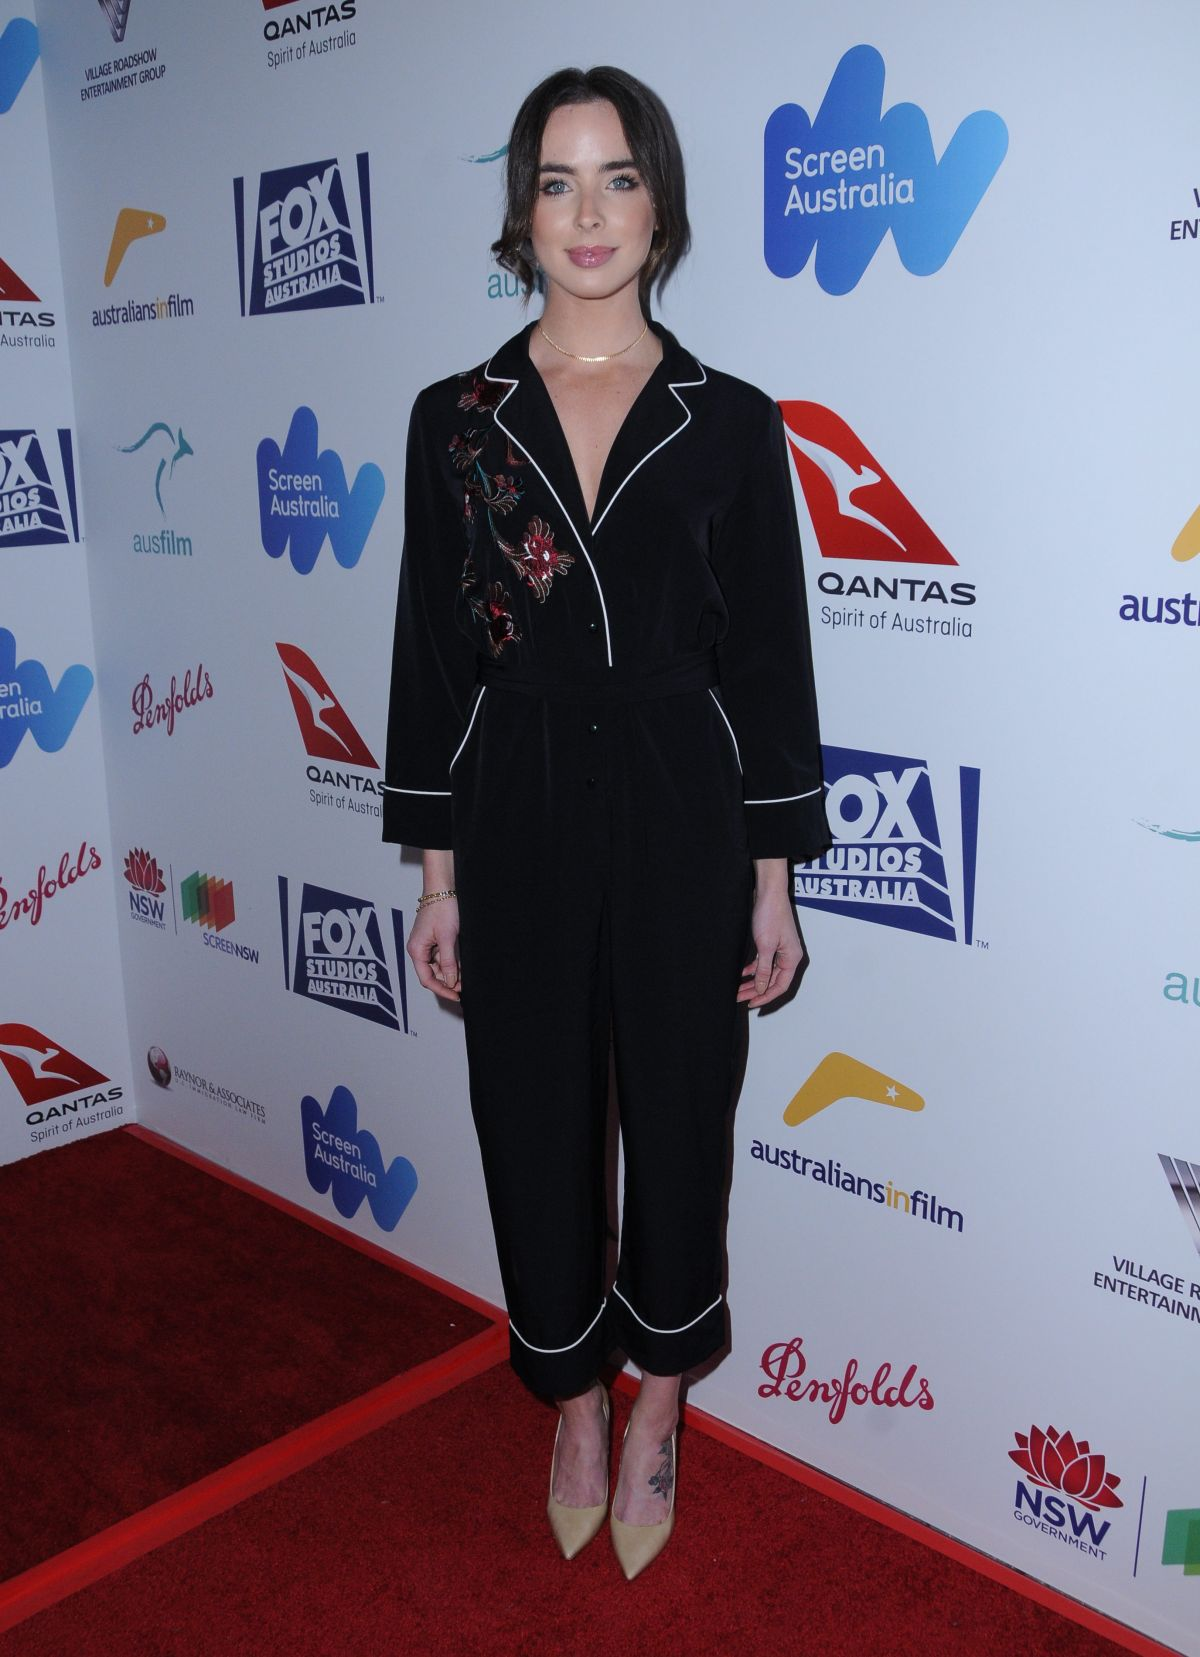 Ashleigh brewer australians in film awards benefit dinner in los angeles nude (61 photo)